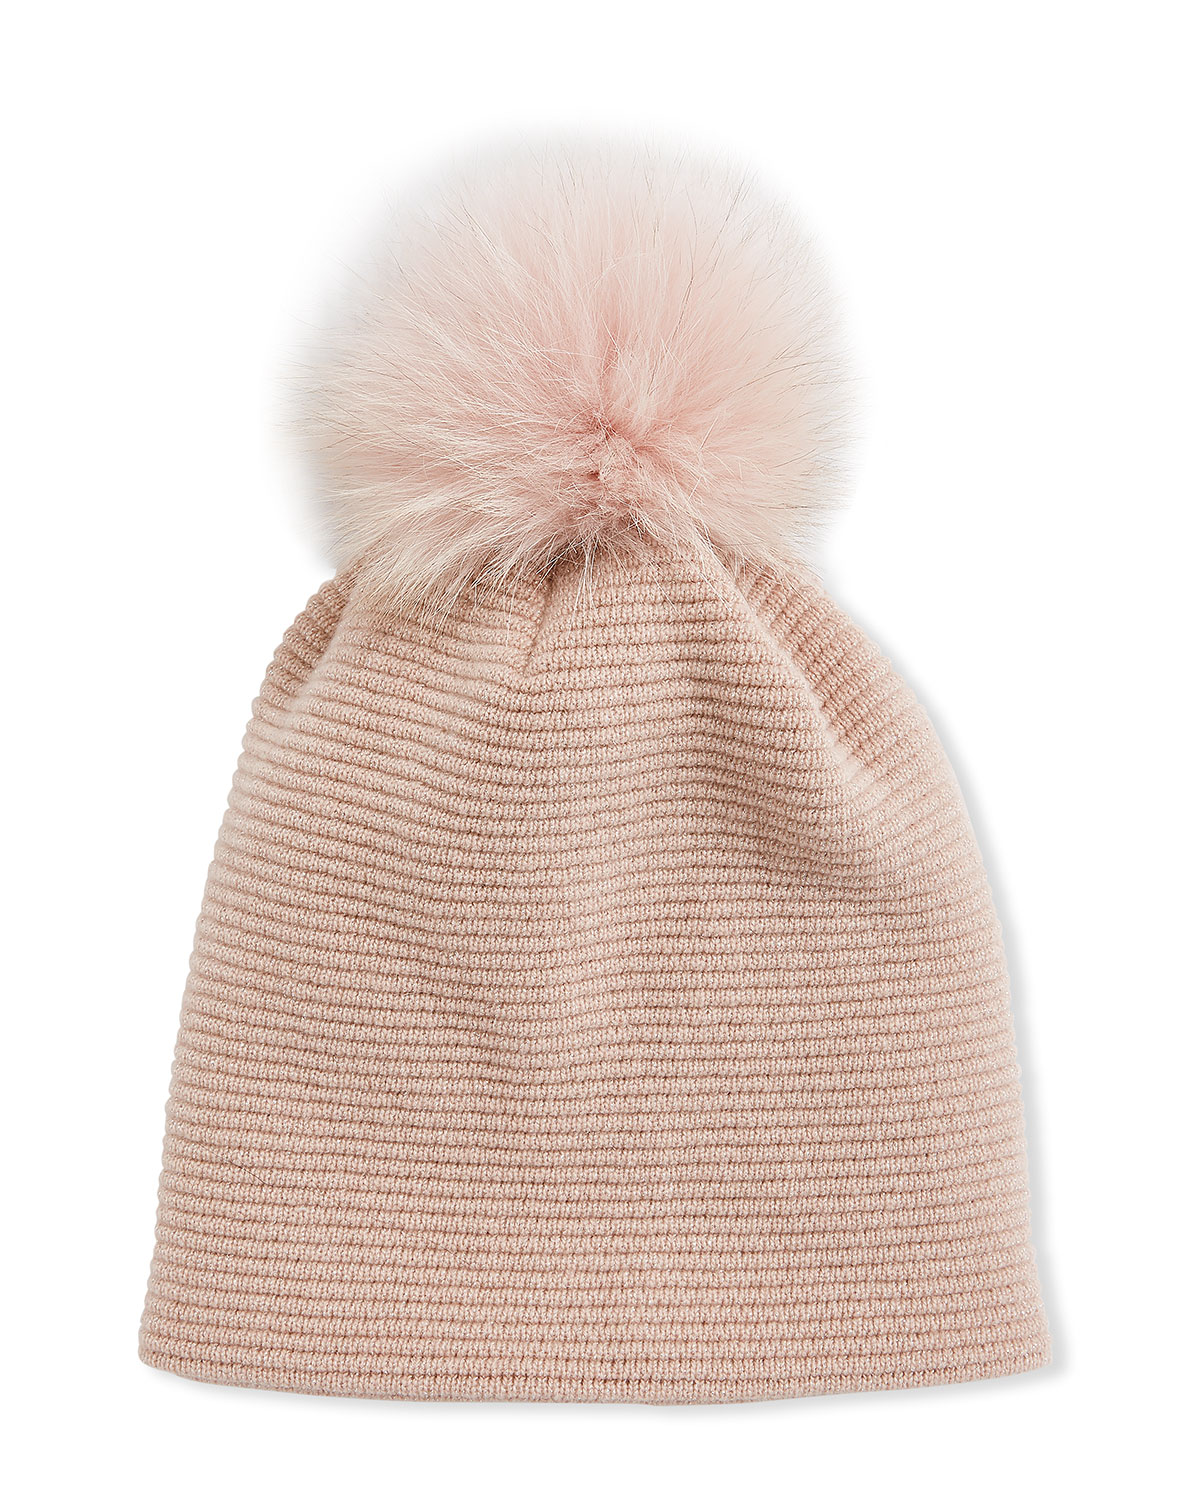 Inverni Hats MERINO WOOL-BLEND KNIT BEANIE HAT W/ FOX FUR POMPOM